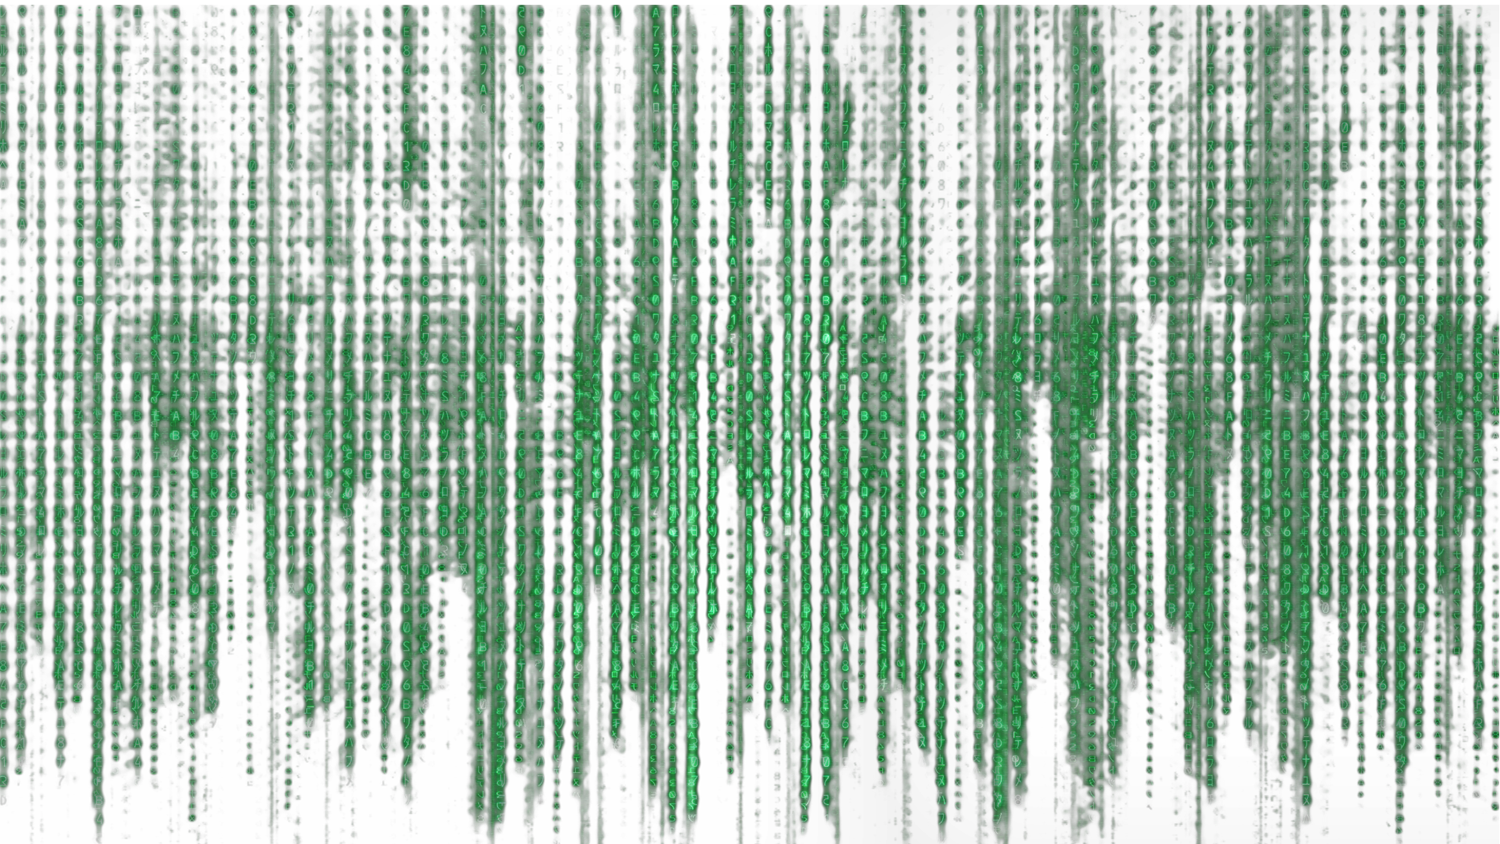 Matrix PNG Images Transparent Free Download.